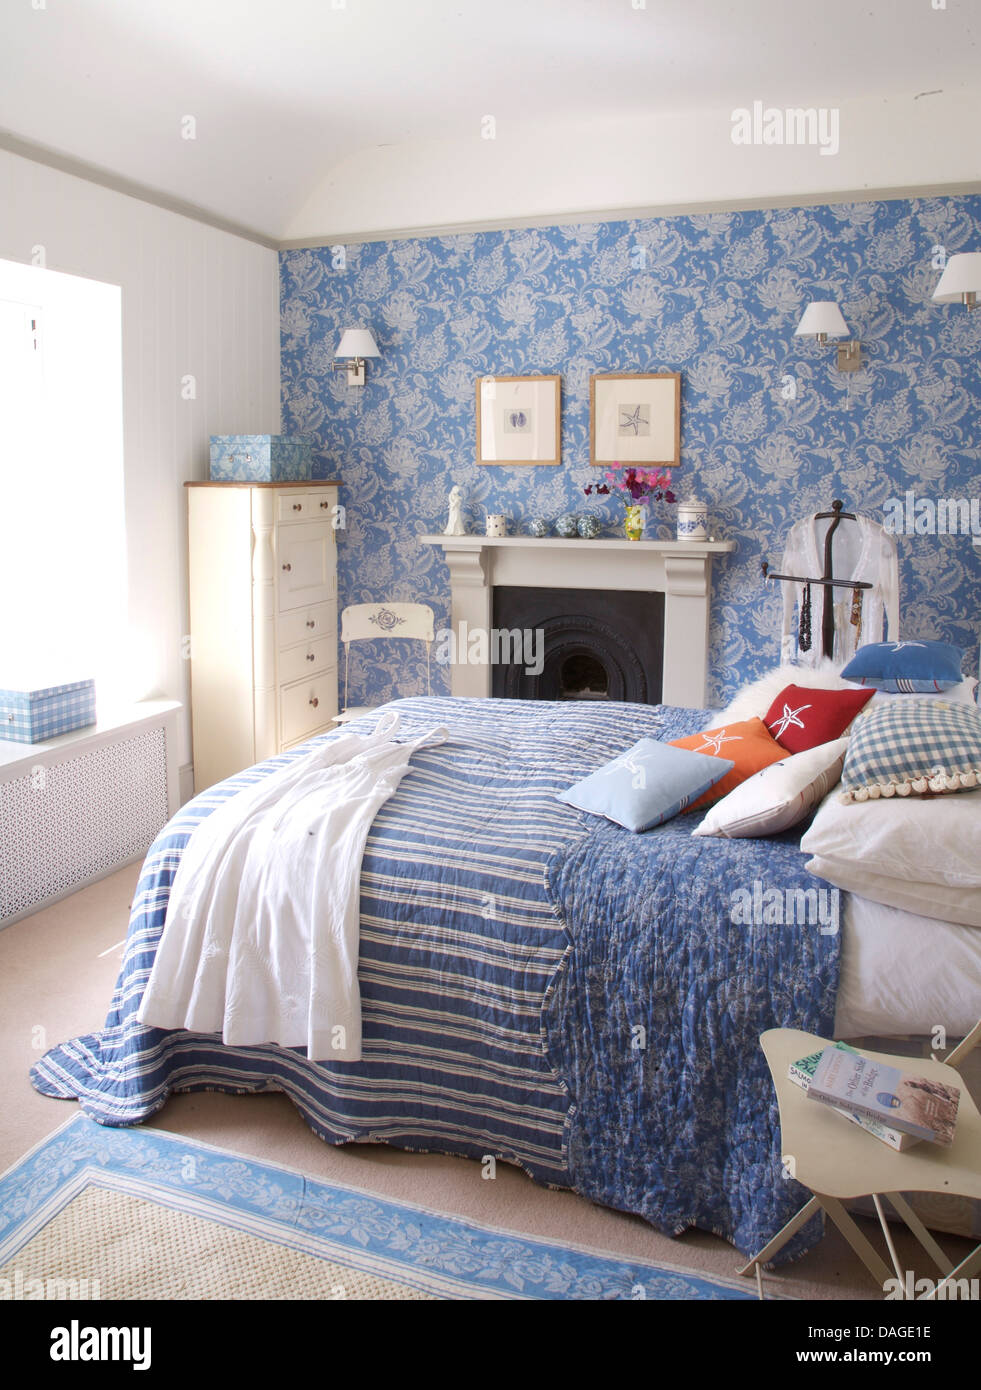 Blue striped quilt with floral lining on bed in coastal for Blue and white bedroom wallpaper